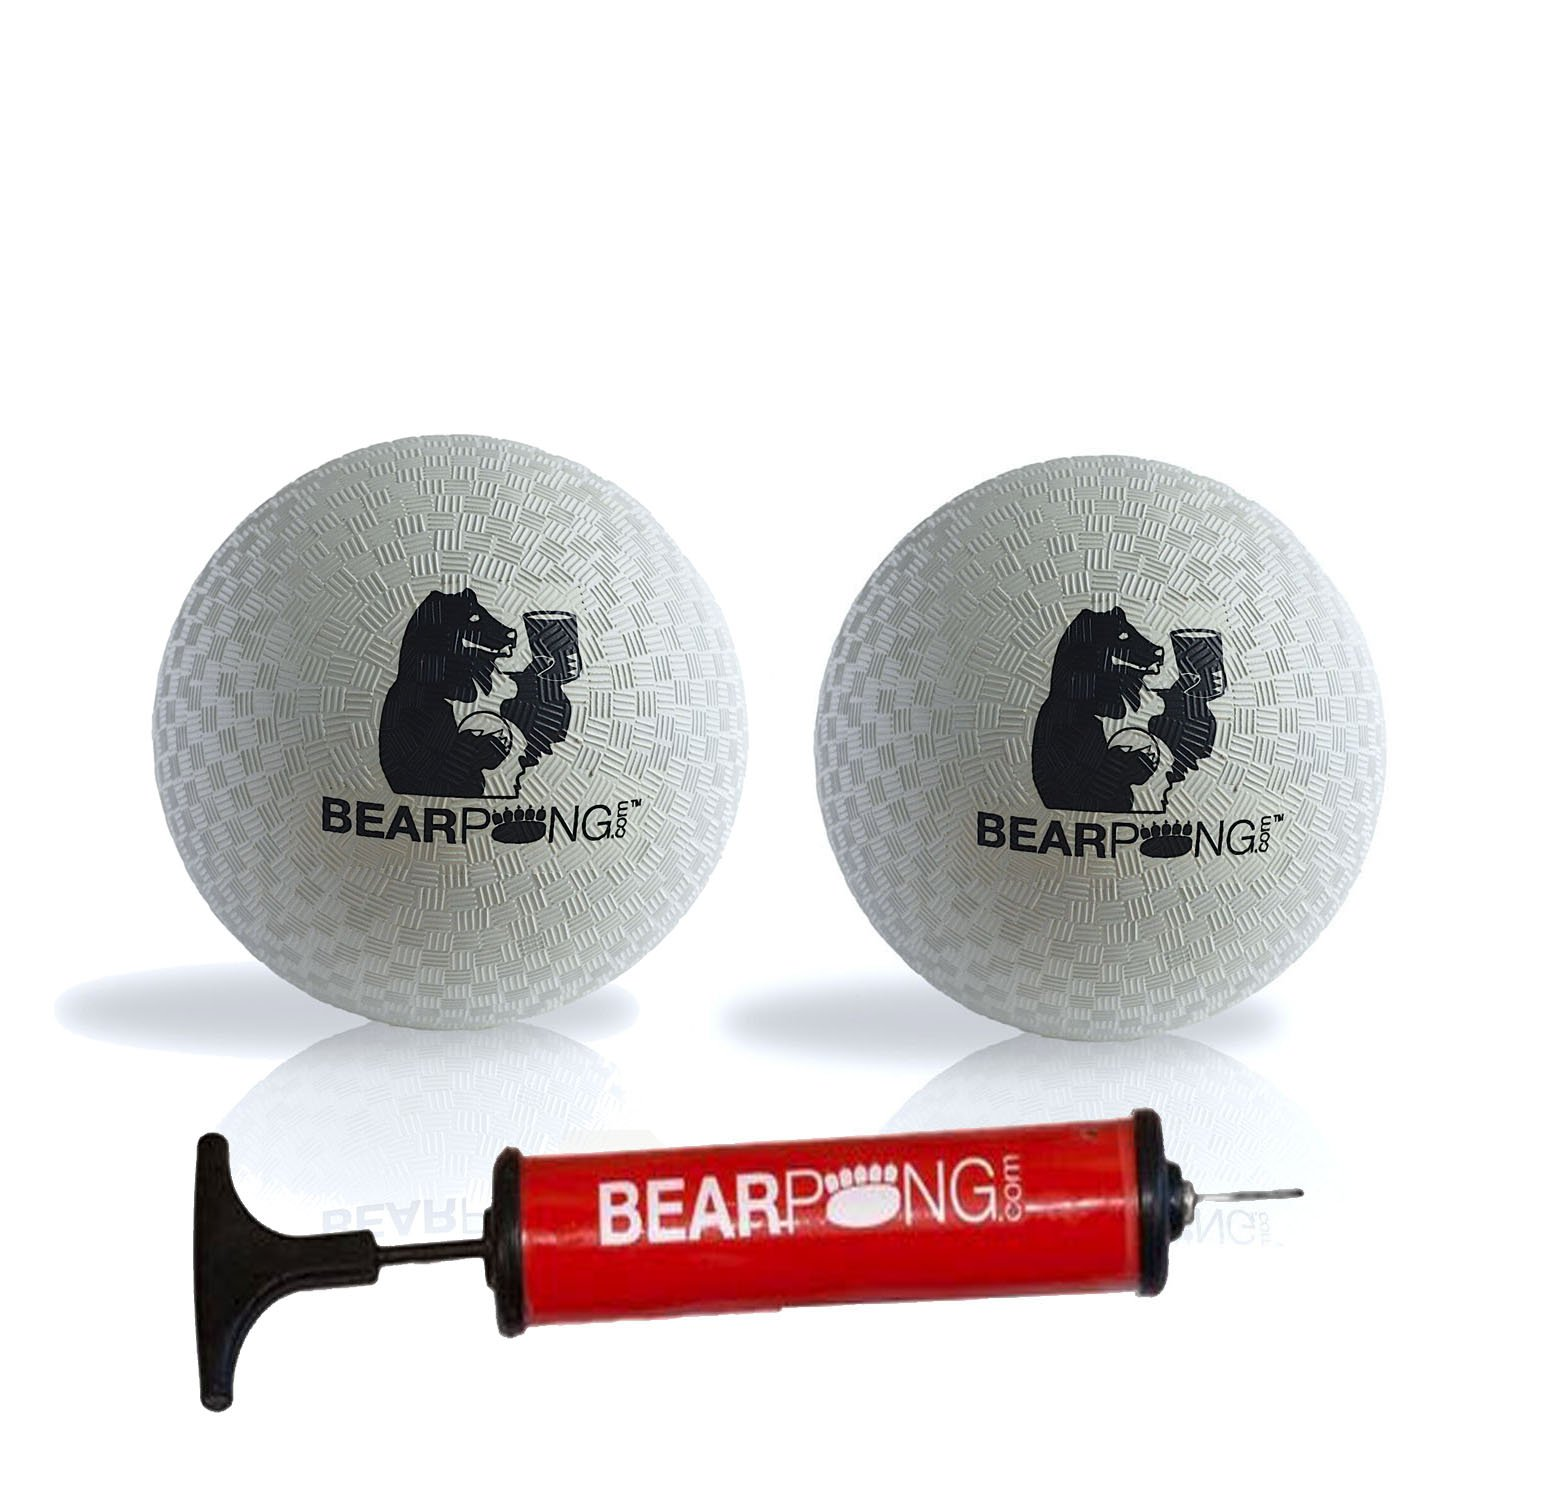 Bearpong Set of 2 Rubber 4'' Wind Balls with Pump by Bear Pong